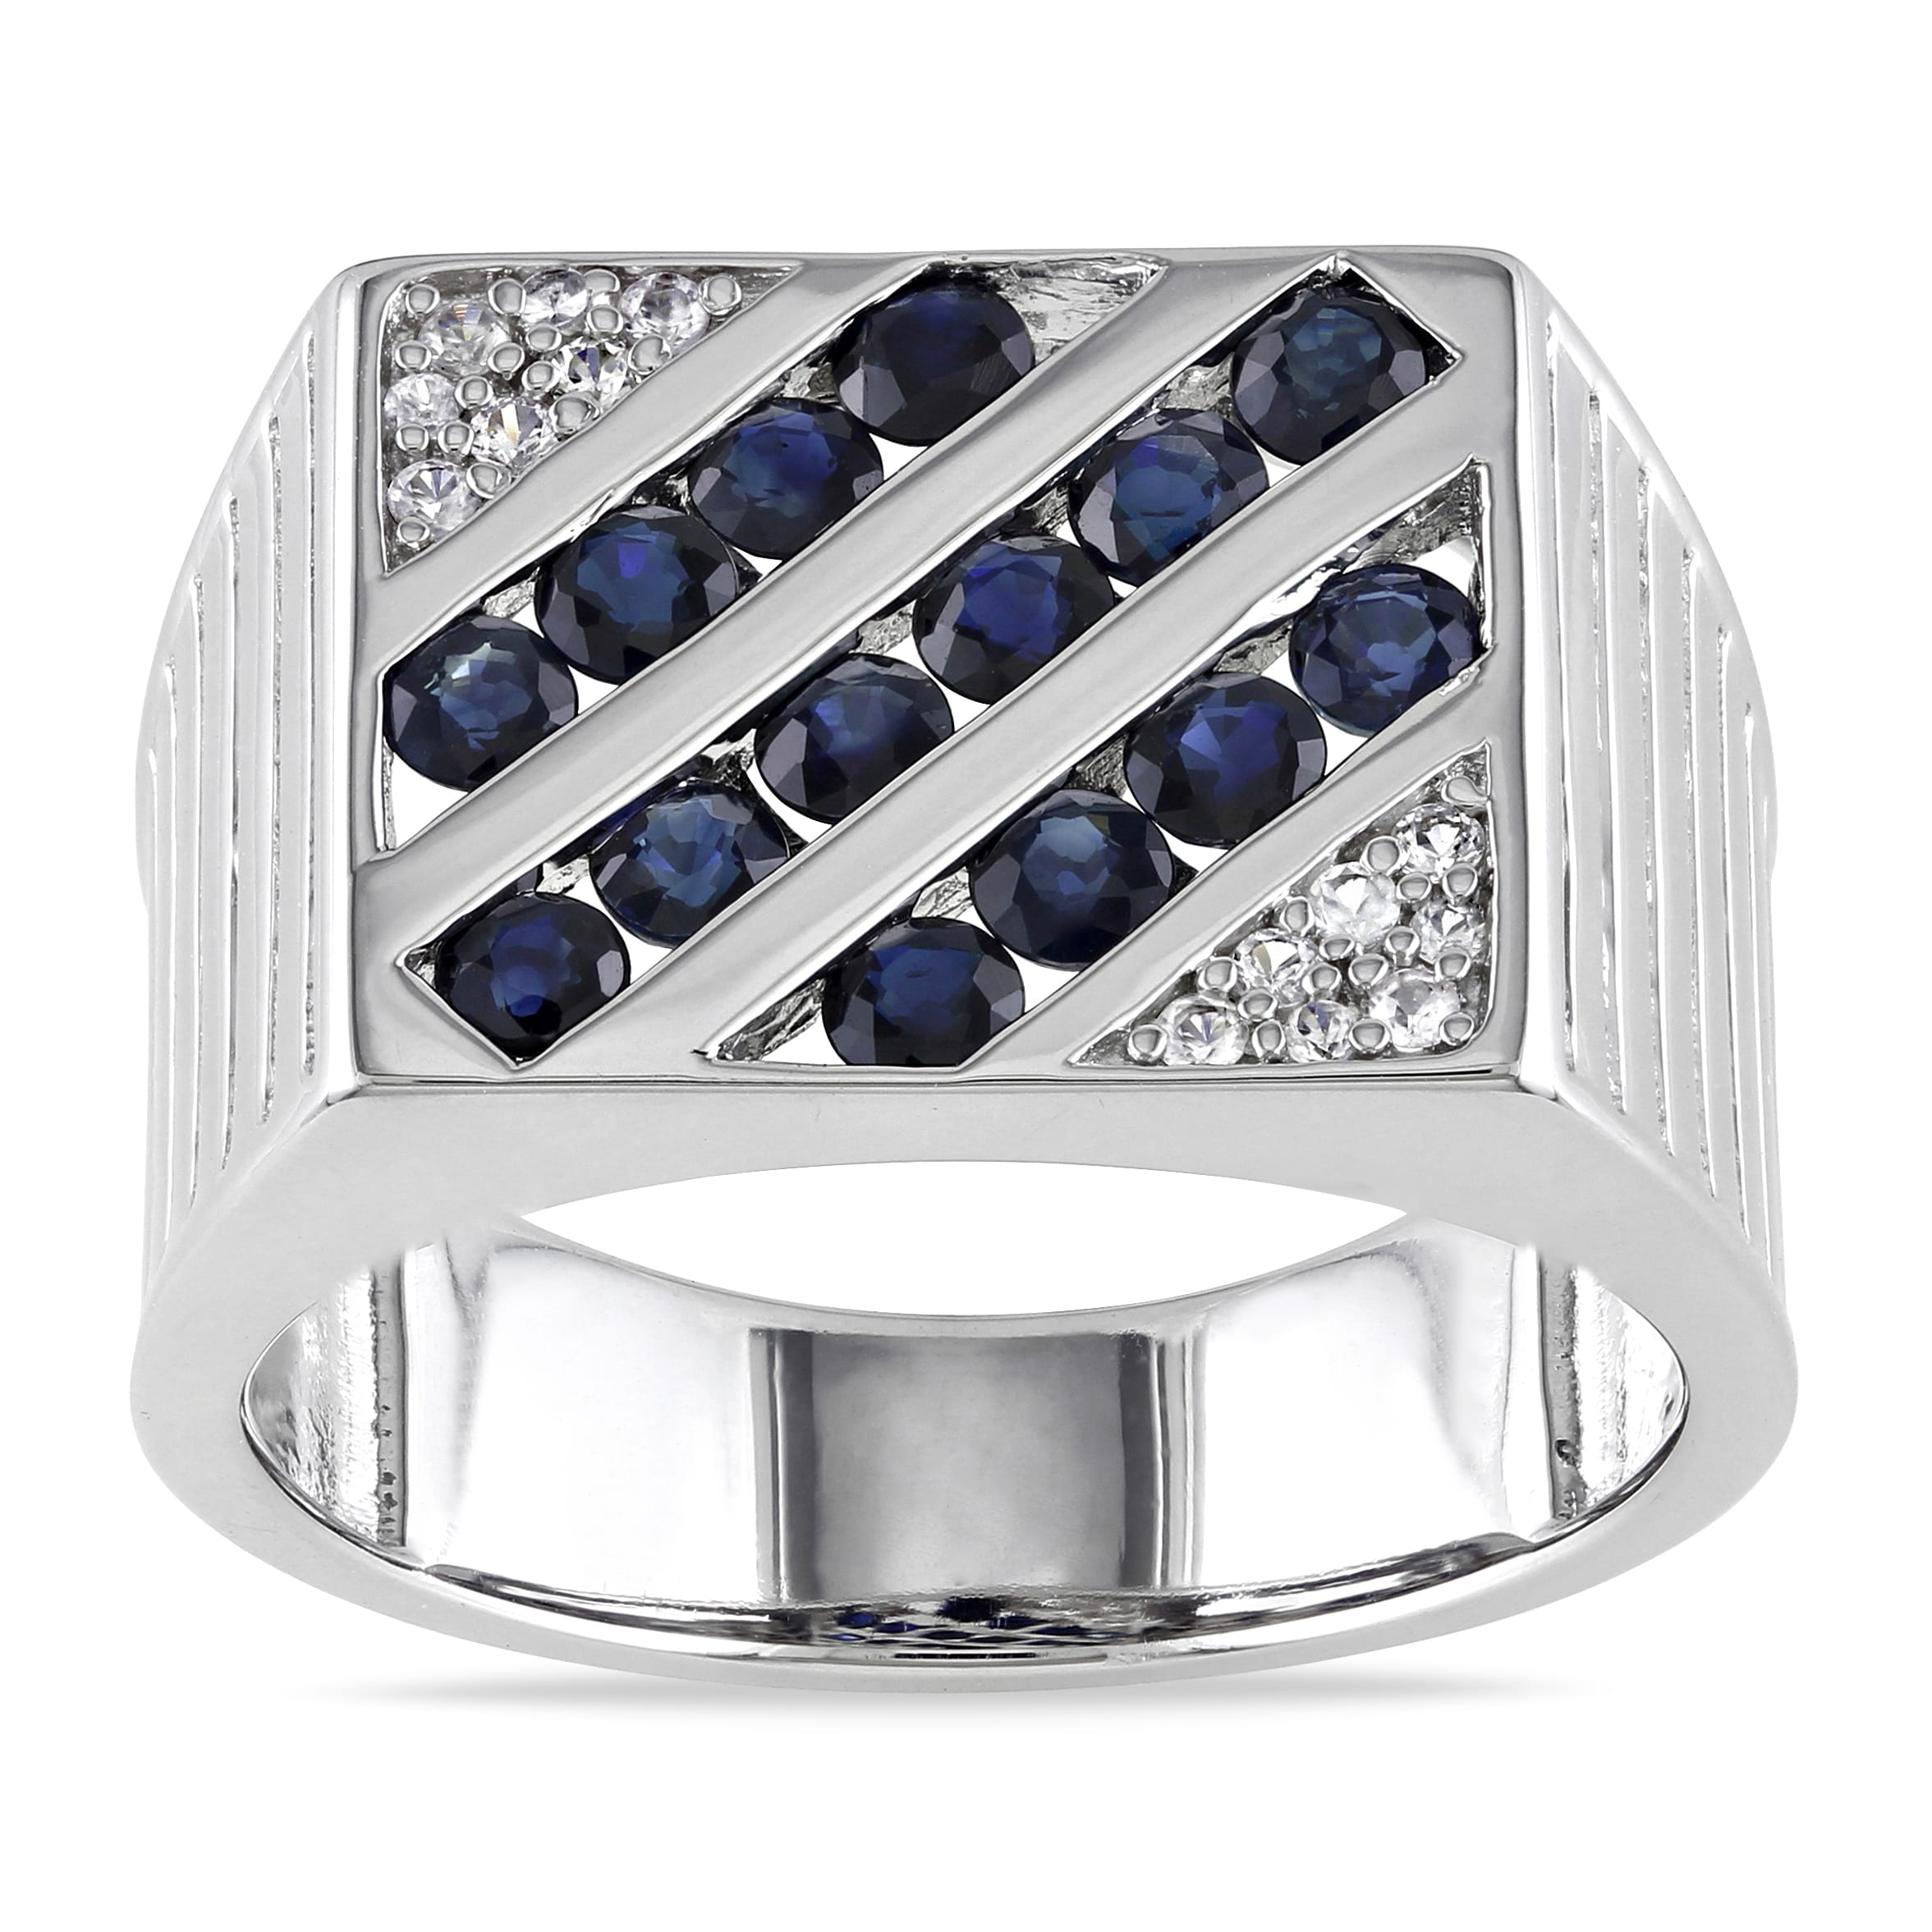 jewelers dublin and ring antique dsc product s diamond sapphire mens men